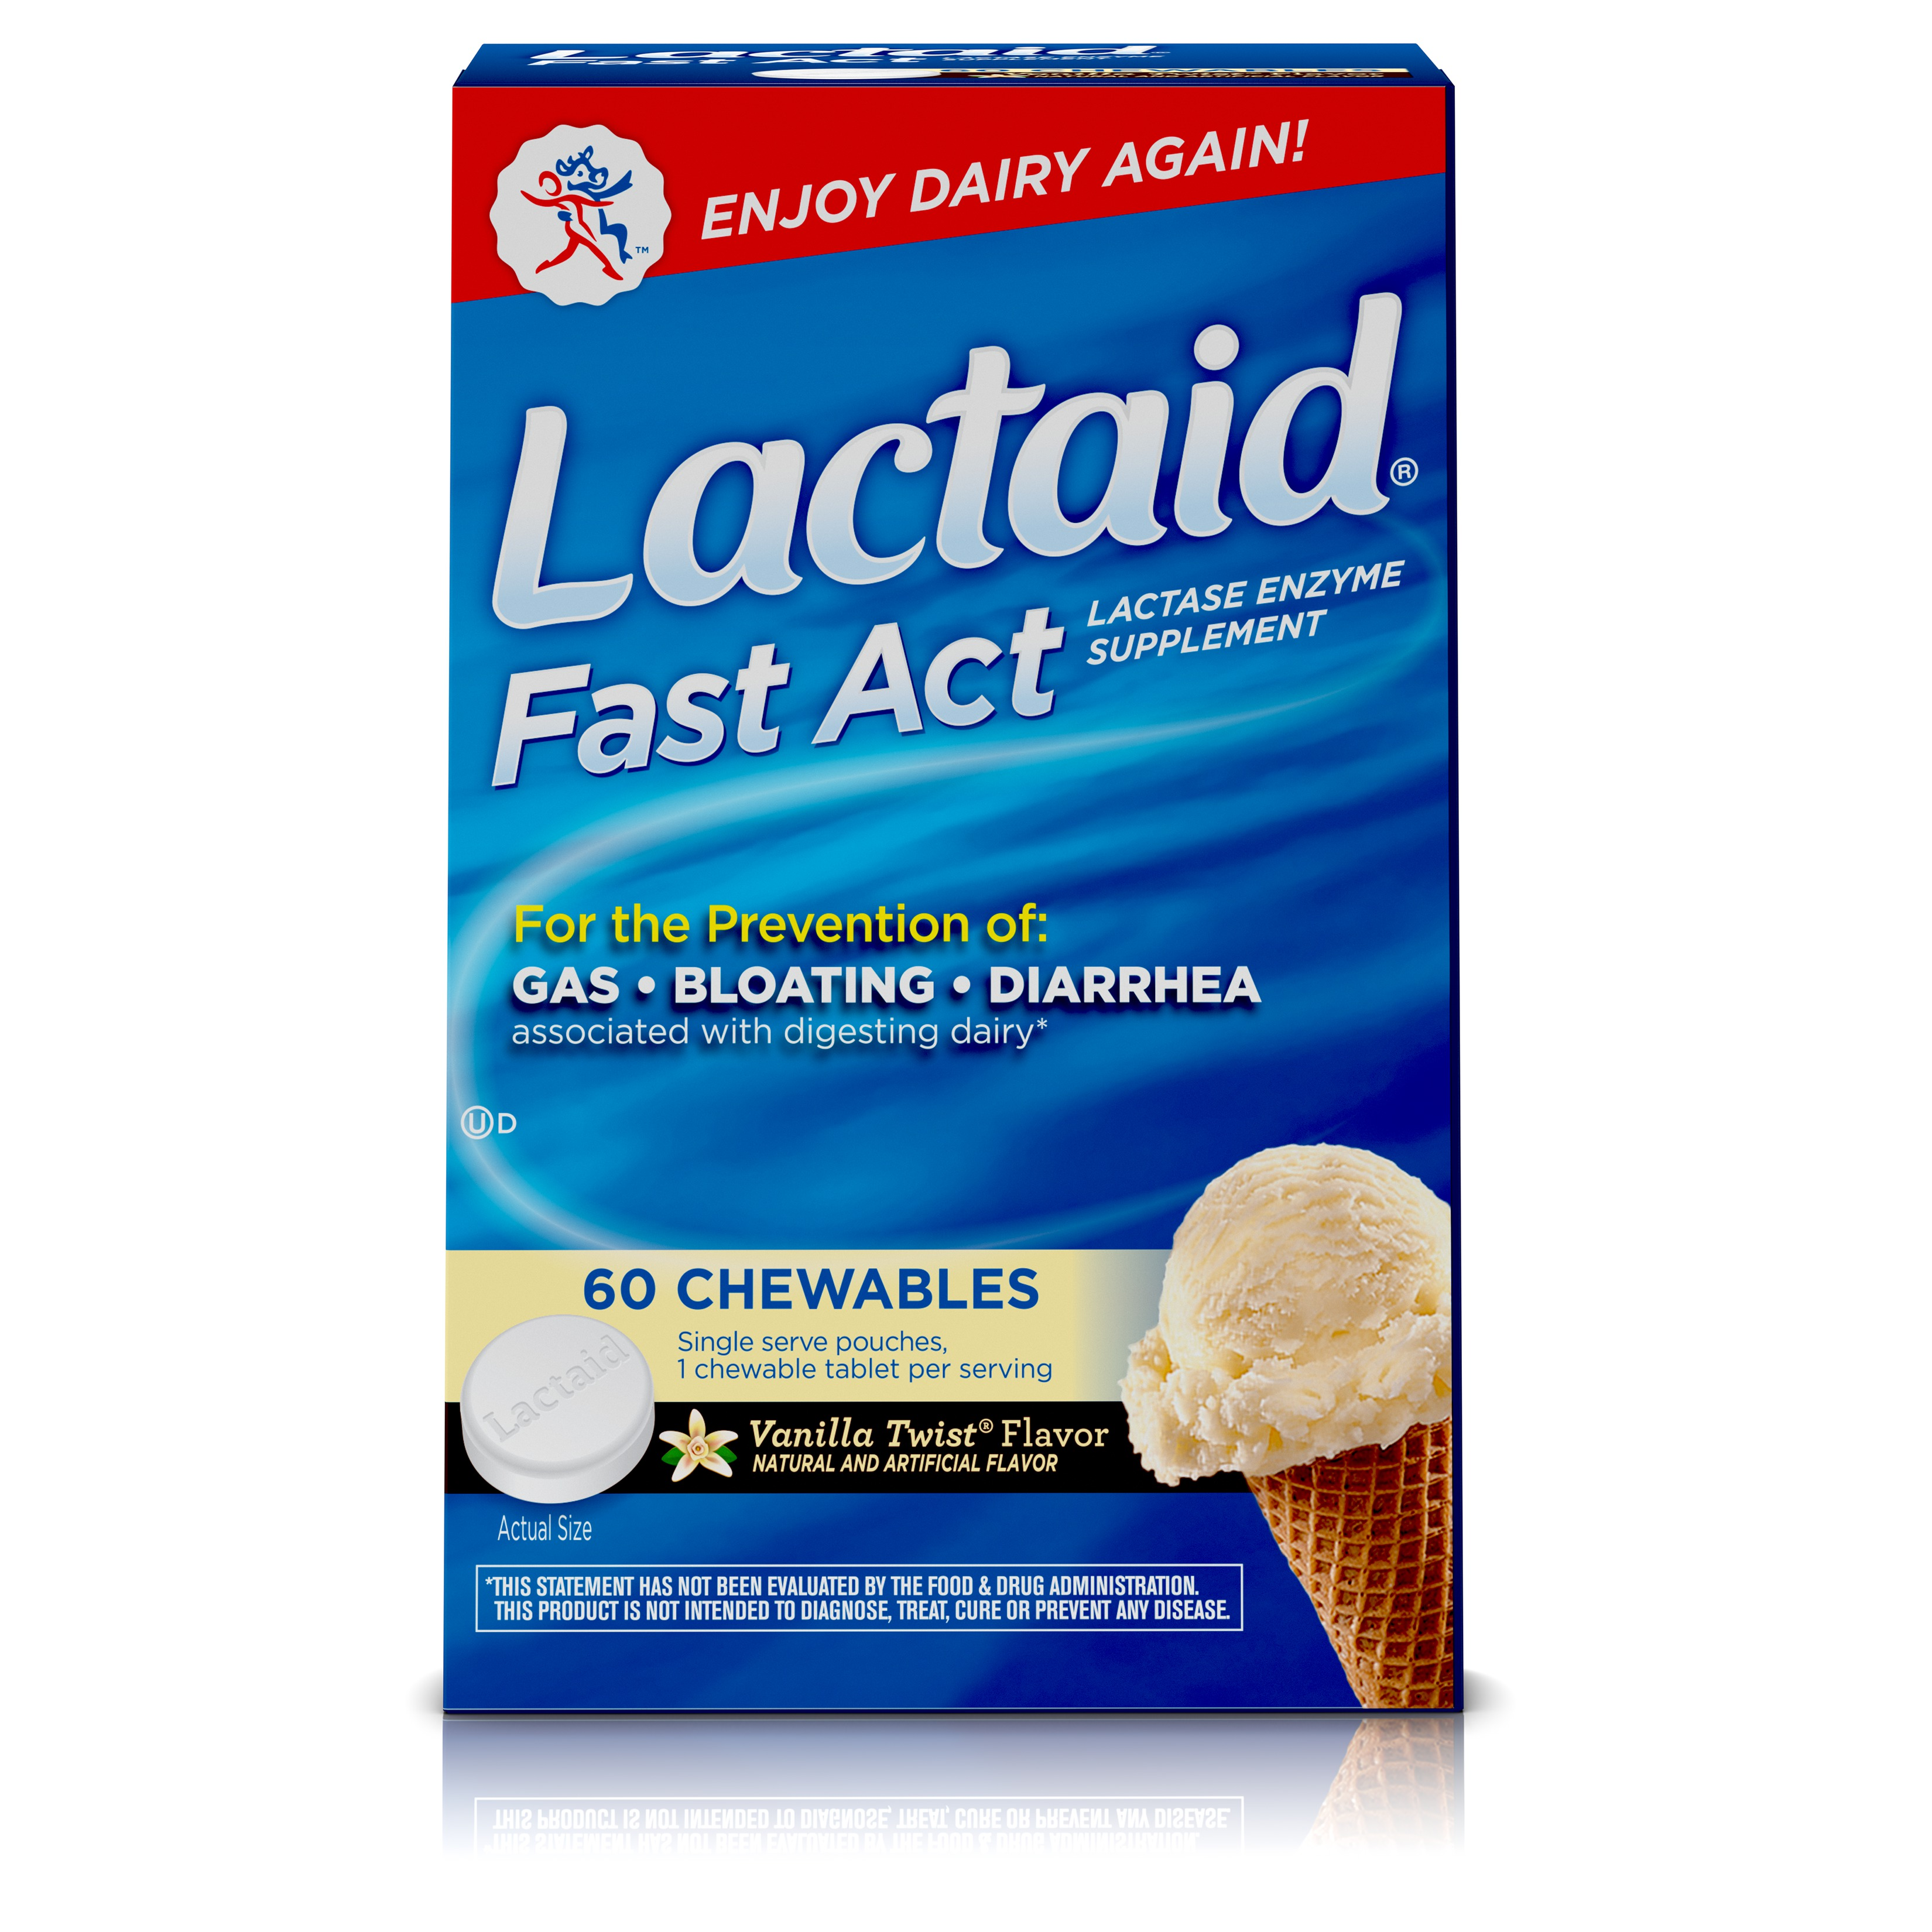 Lactaid Fast Act Lactose Intolerance Relief, Chewables, Vanilla Twist flavored, 60 single-dose pouches